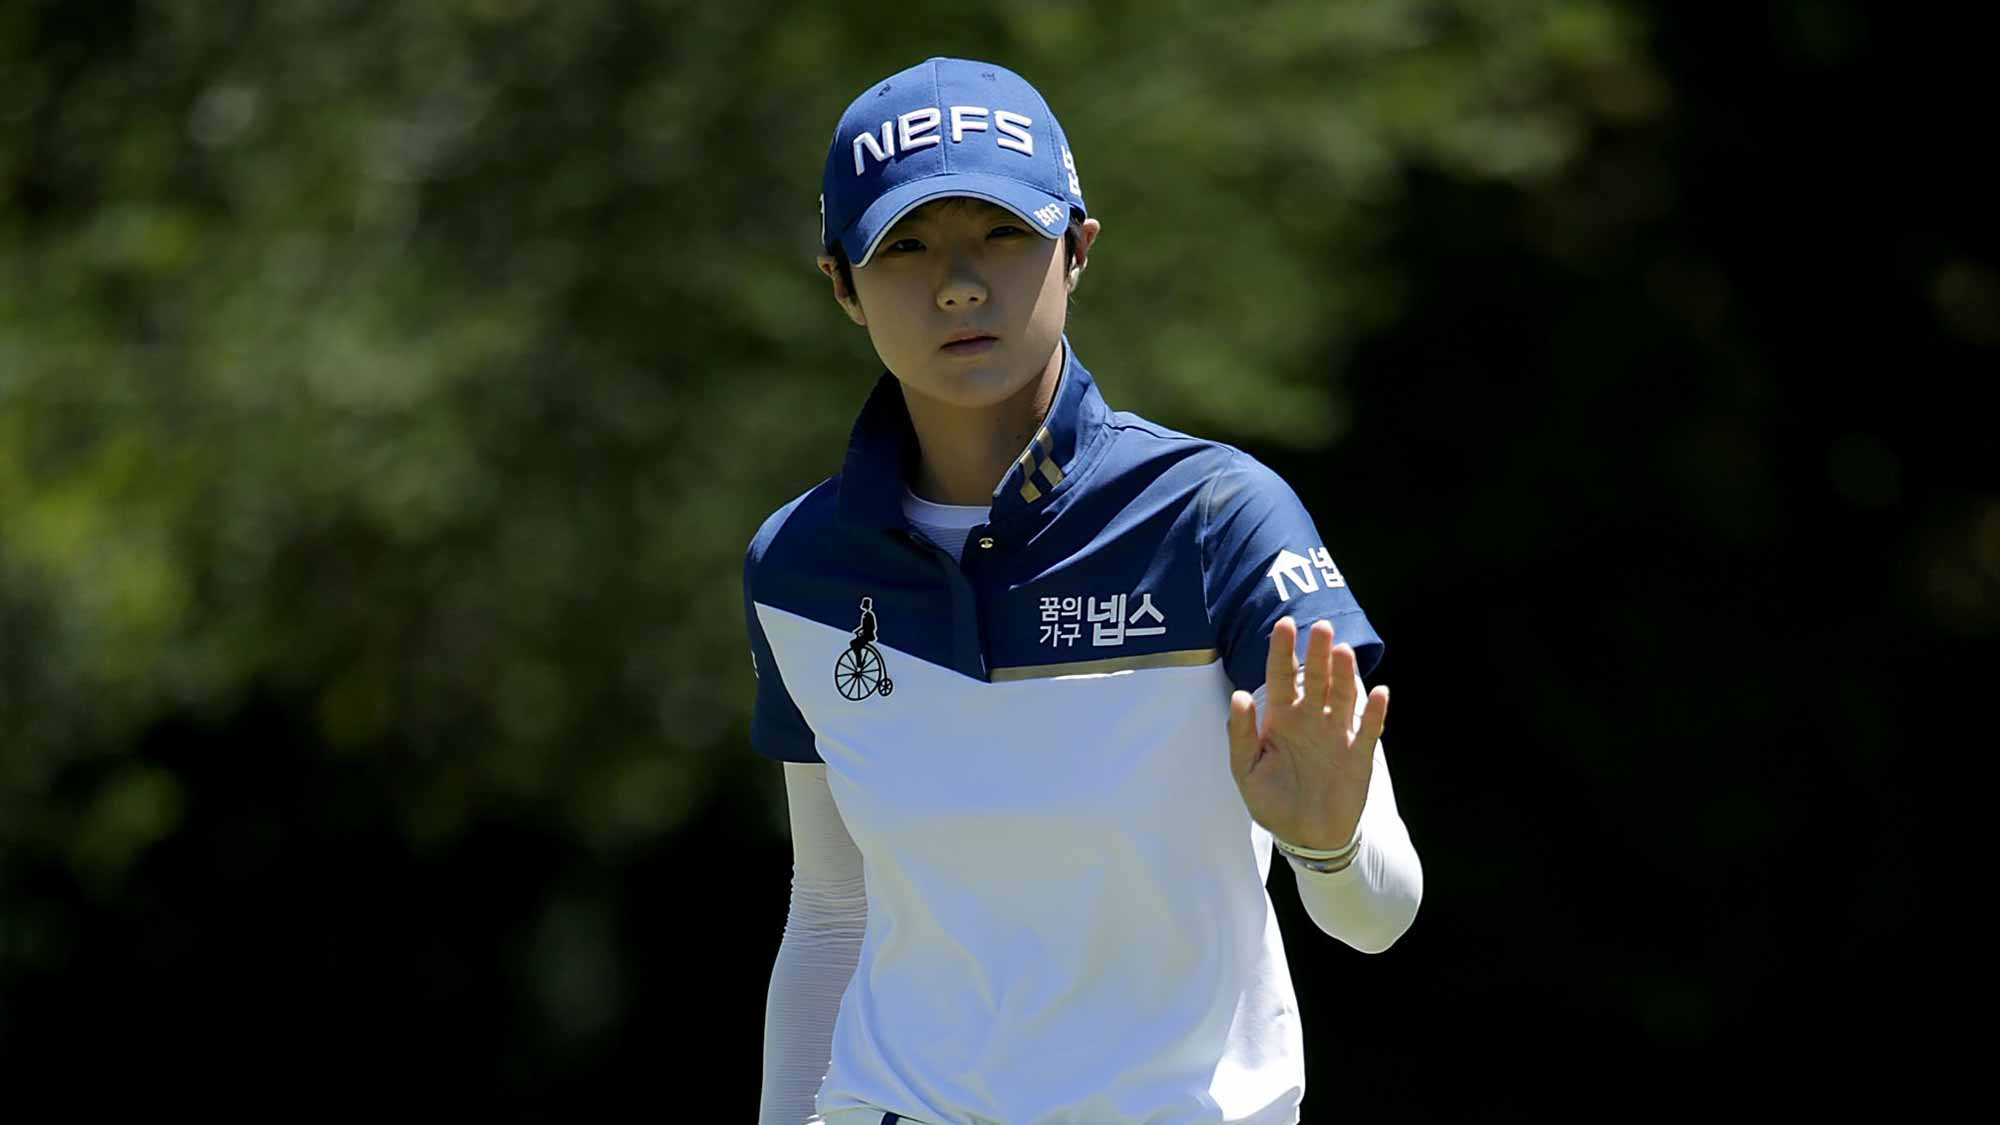 Sung Hyun Park during the third round of the U.S. Women's Open at the CordeValle Golf Club